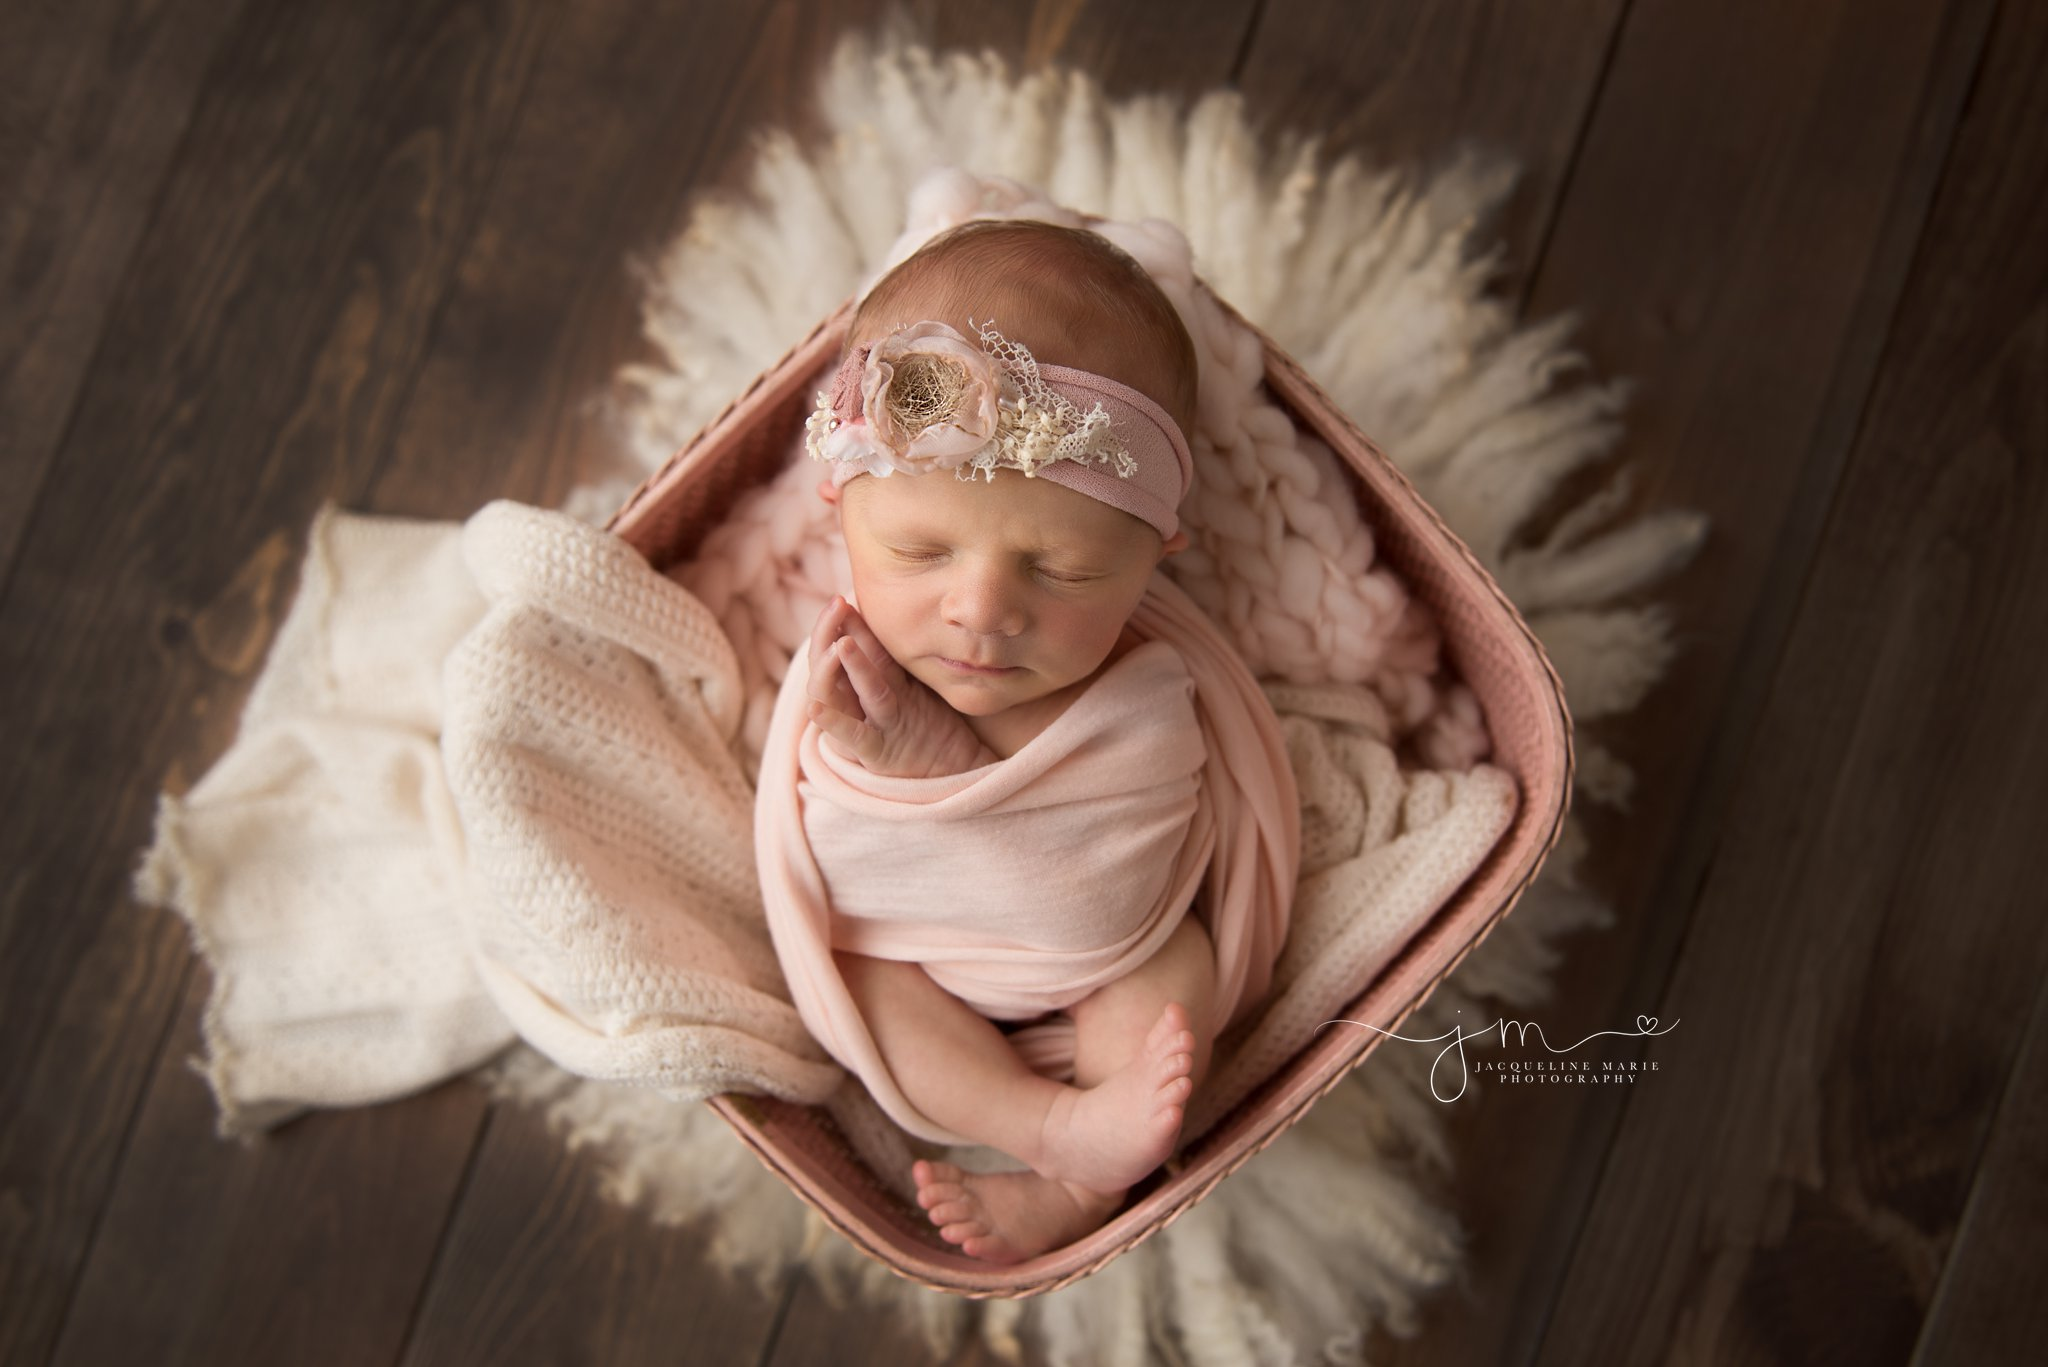 columbus ohio newborn baby girl folds hands near face while swaddled in pink basket for newborn photos